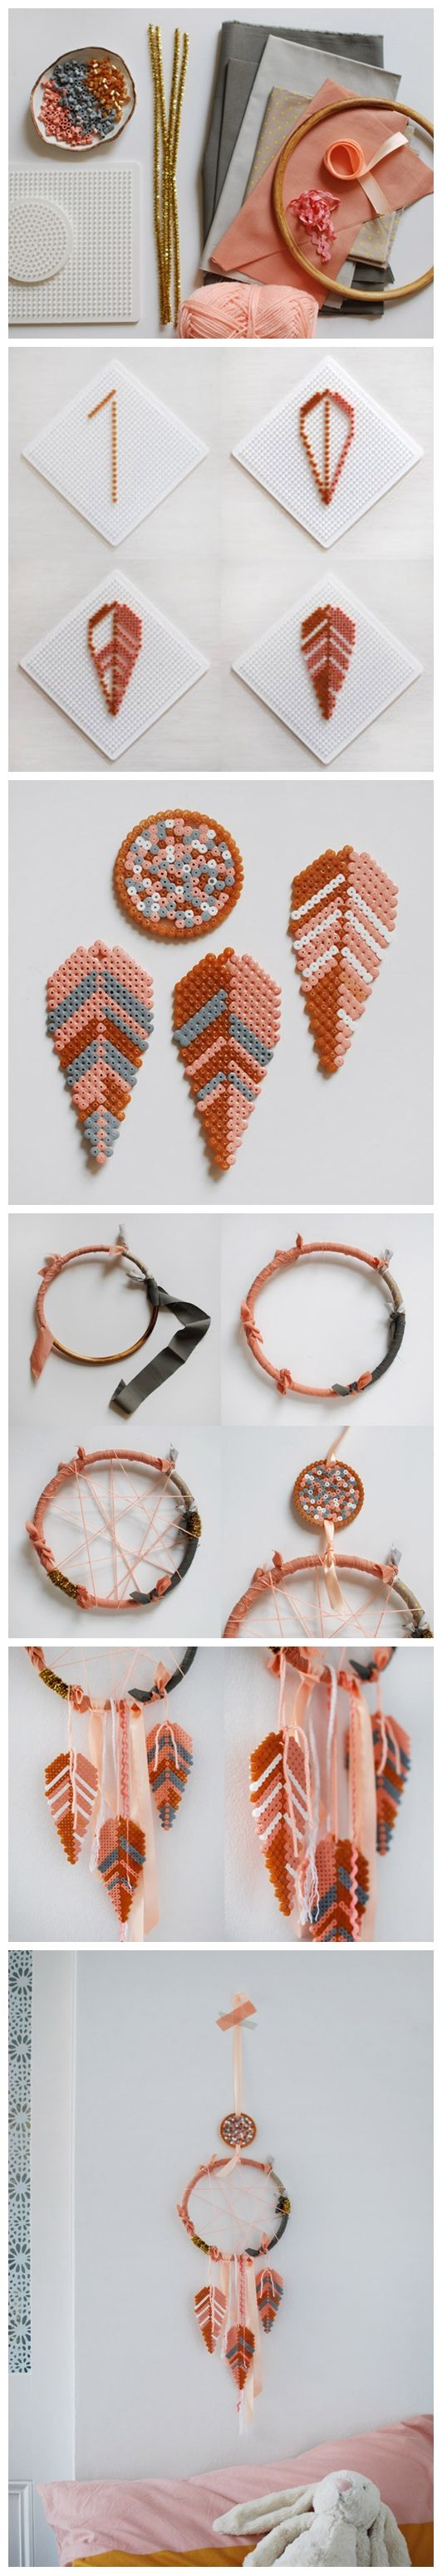 DIY: Make a lovely dream catcher with Hama bead feathers